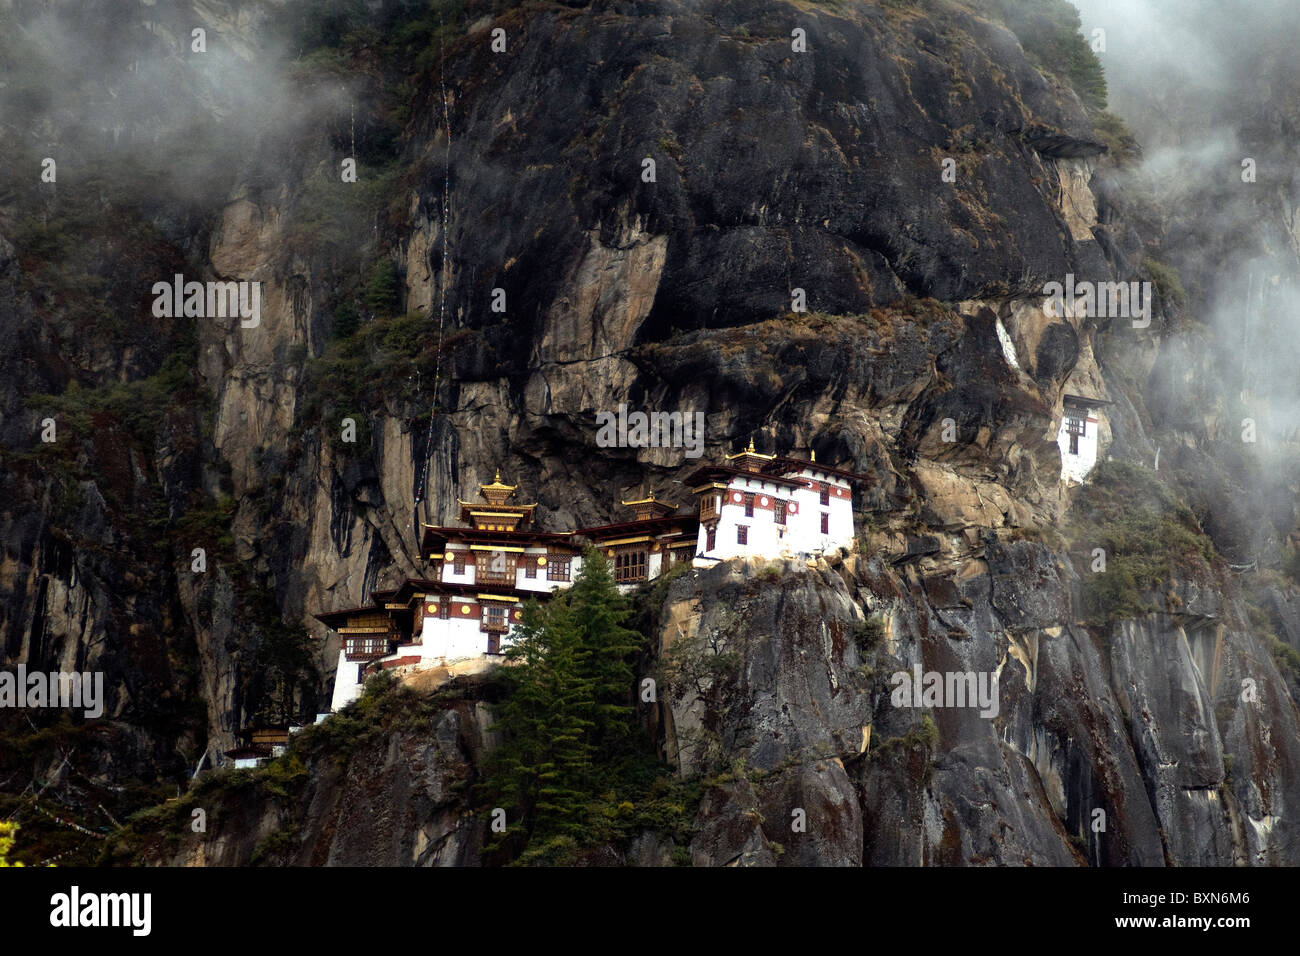 Tiger's Nest, or Taktsang, a Buddhist monastery spectacularly located high on a cliff face in Bhutan - Stock Image